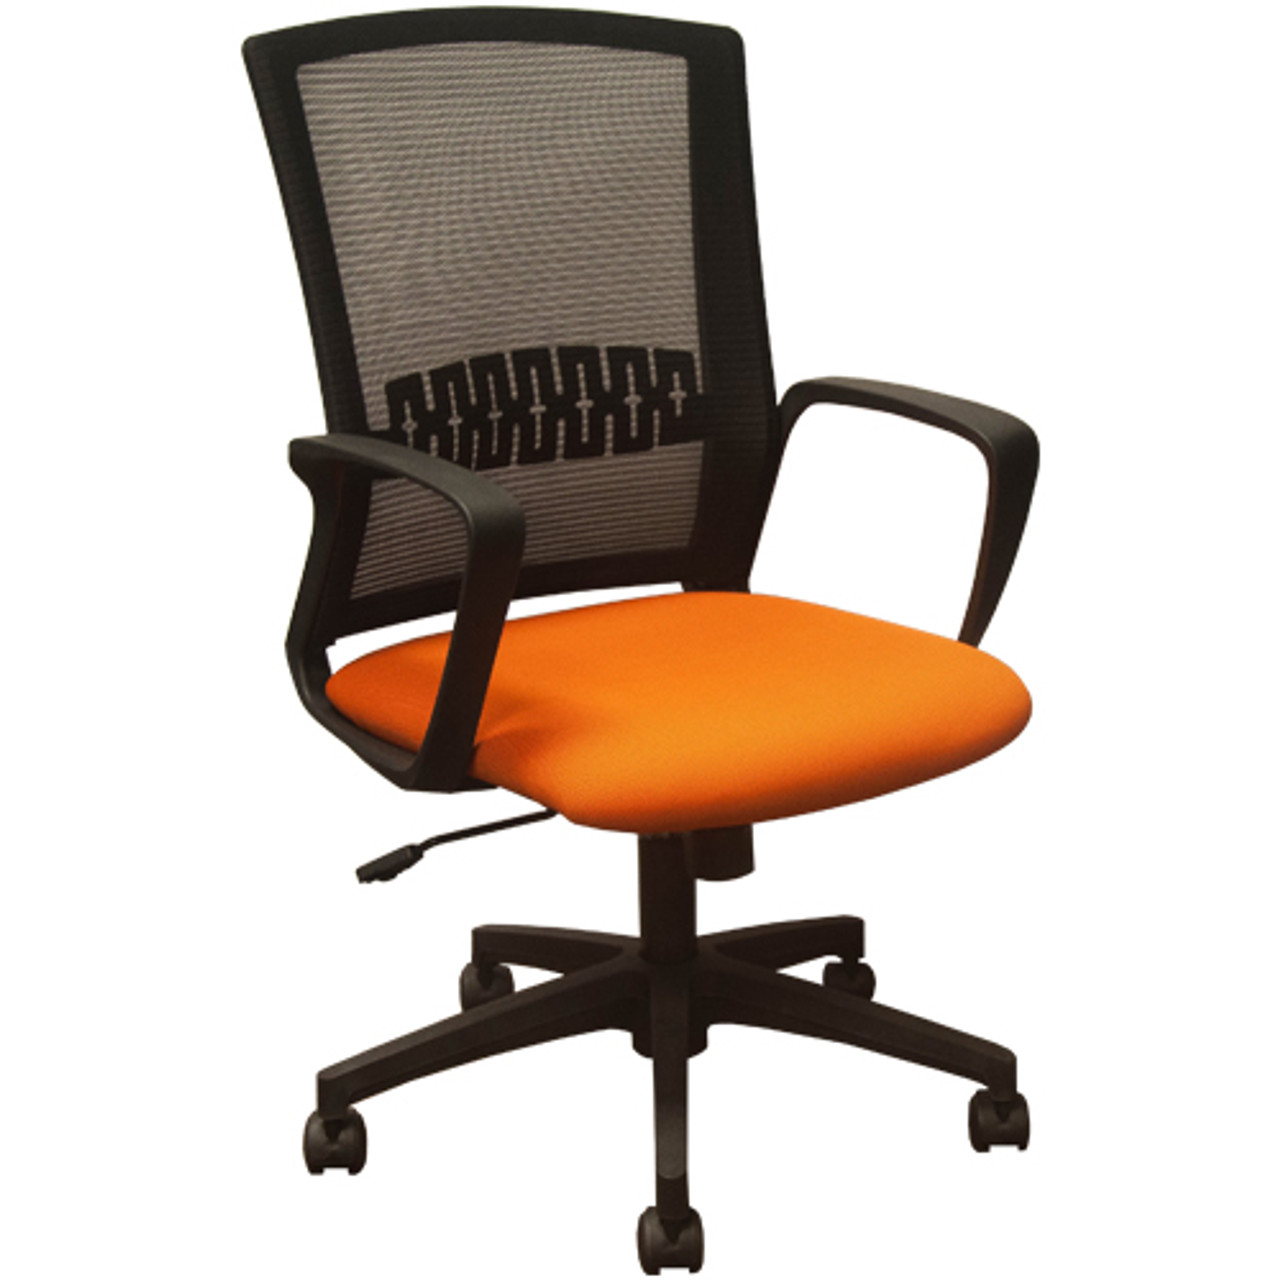 Swell Advantage Black Mesh Office Chairs Orange Padded Seat Kb 8929 Orange Machost Co Dining Chair Design Ideas Machostcouk